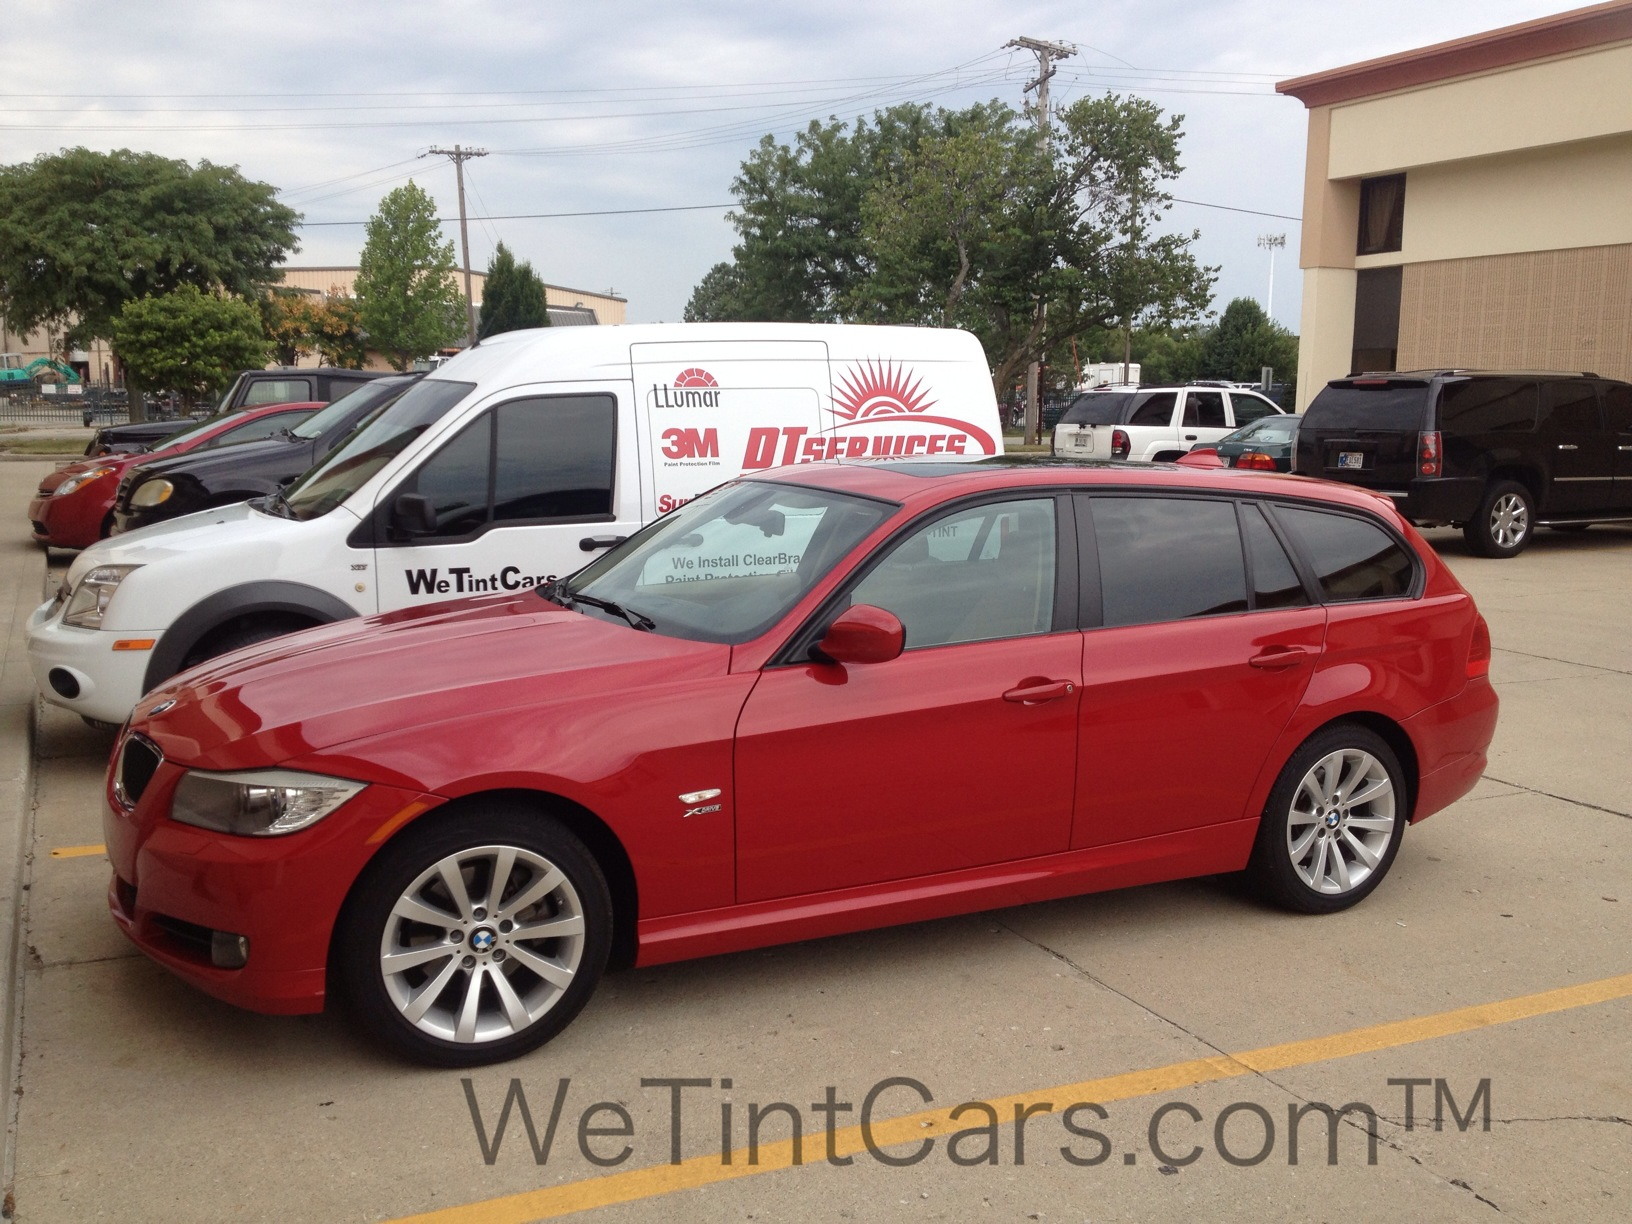 Illinois Window Tint Law >> BMW Picture Gallery